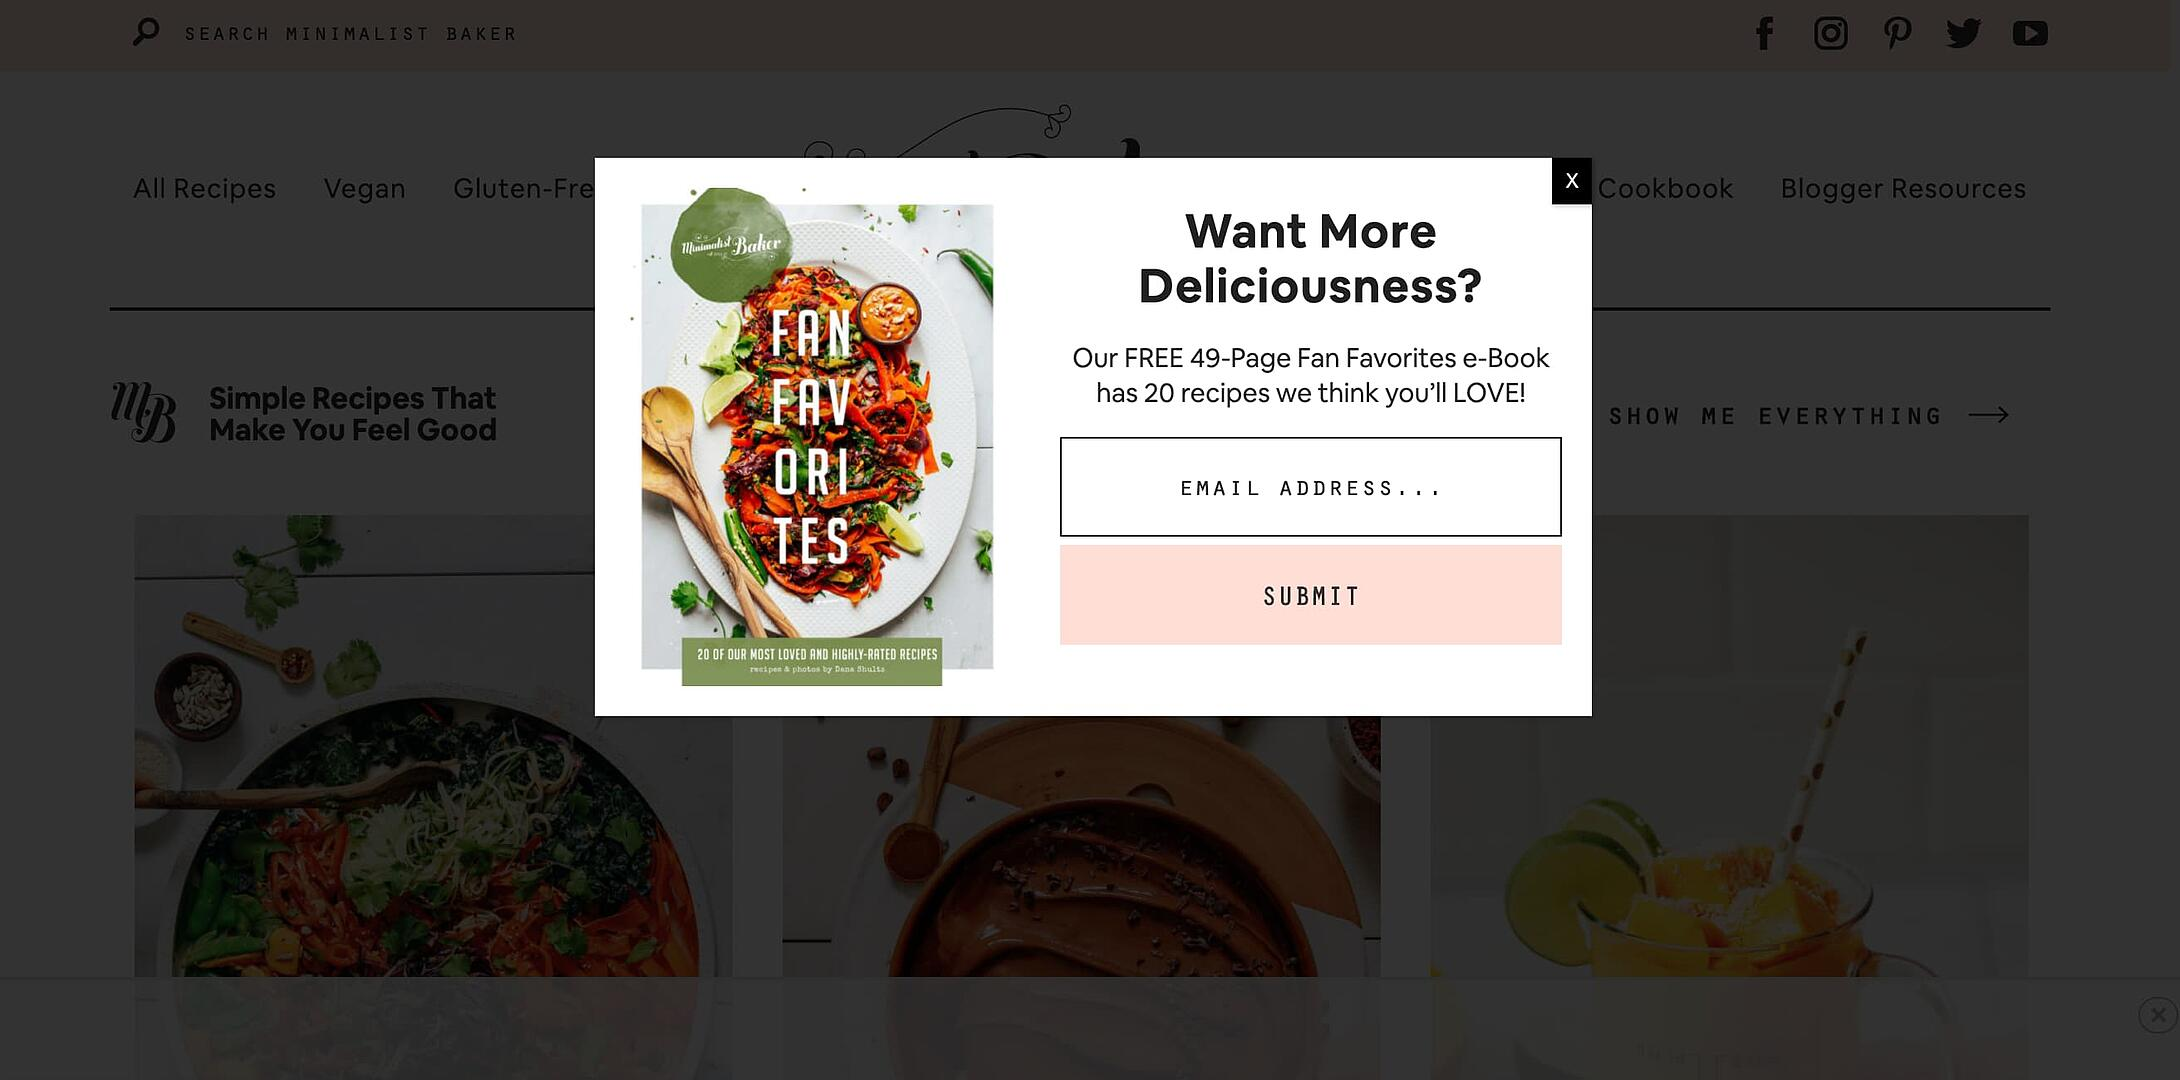 Minimalist Baker e-book pop up